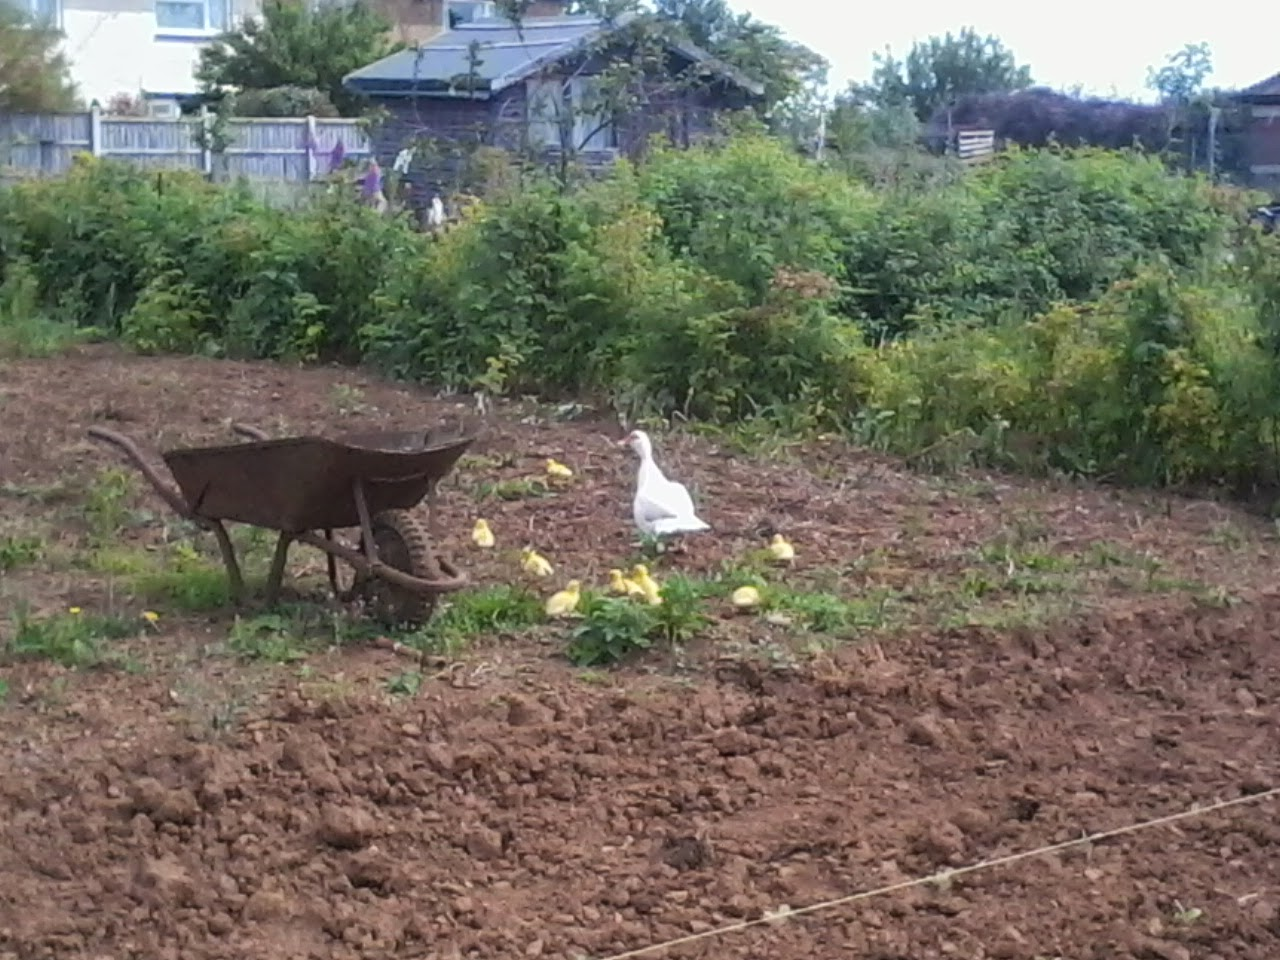 ducks and ducklings on allotments and ponds